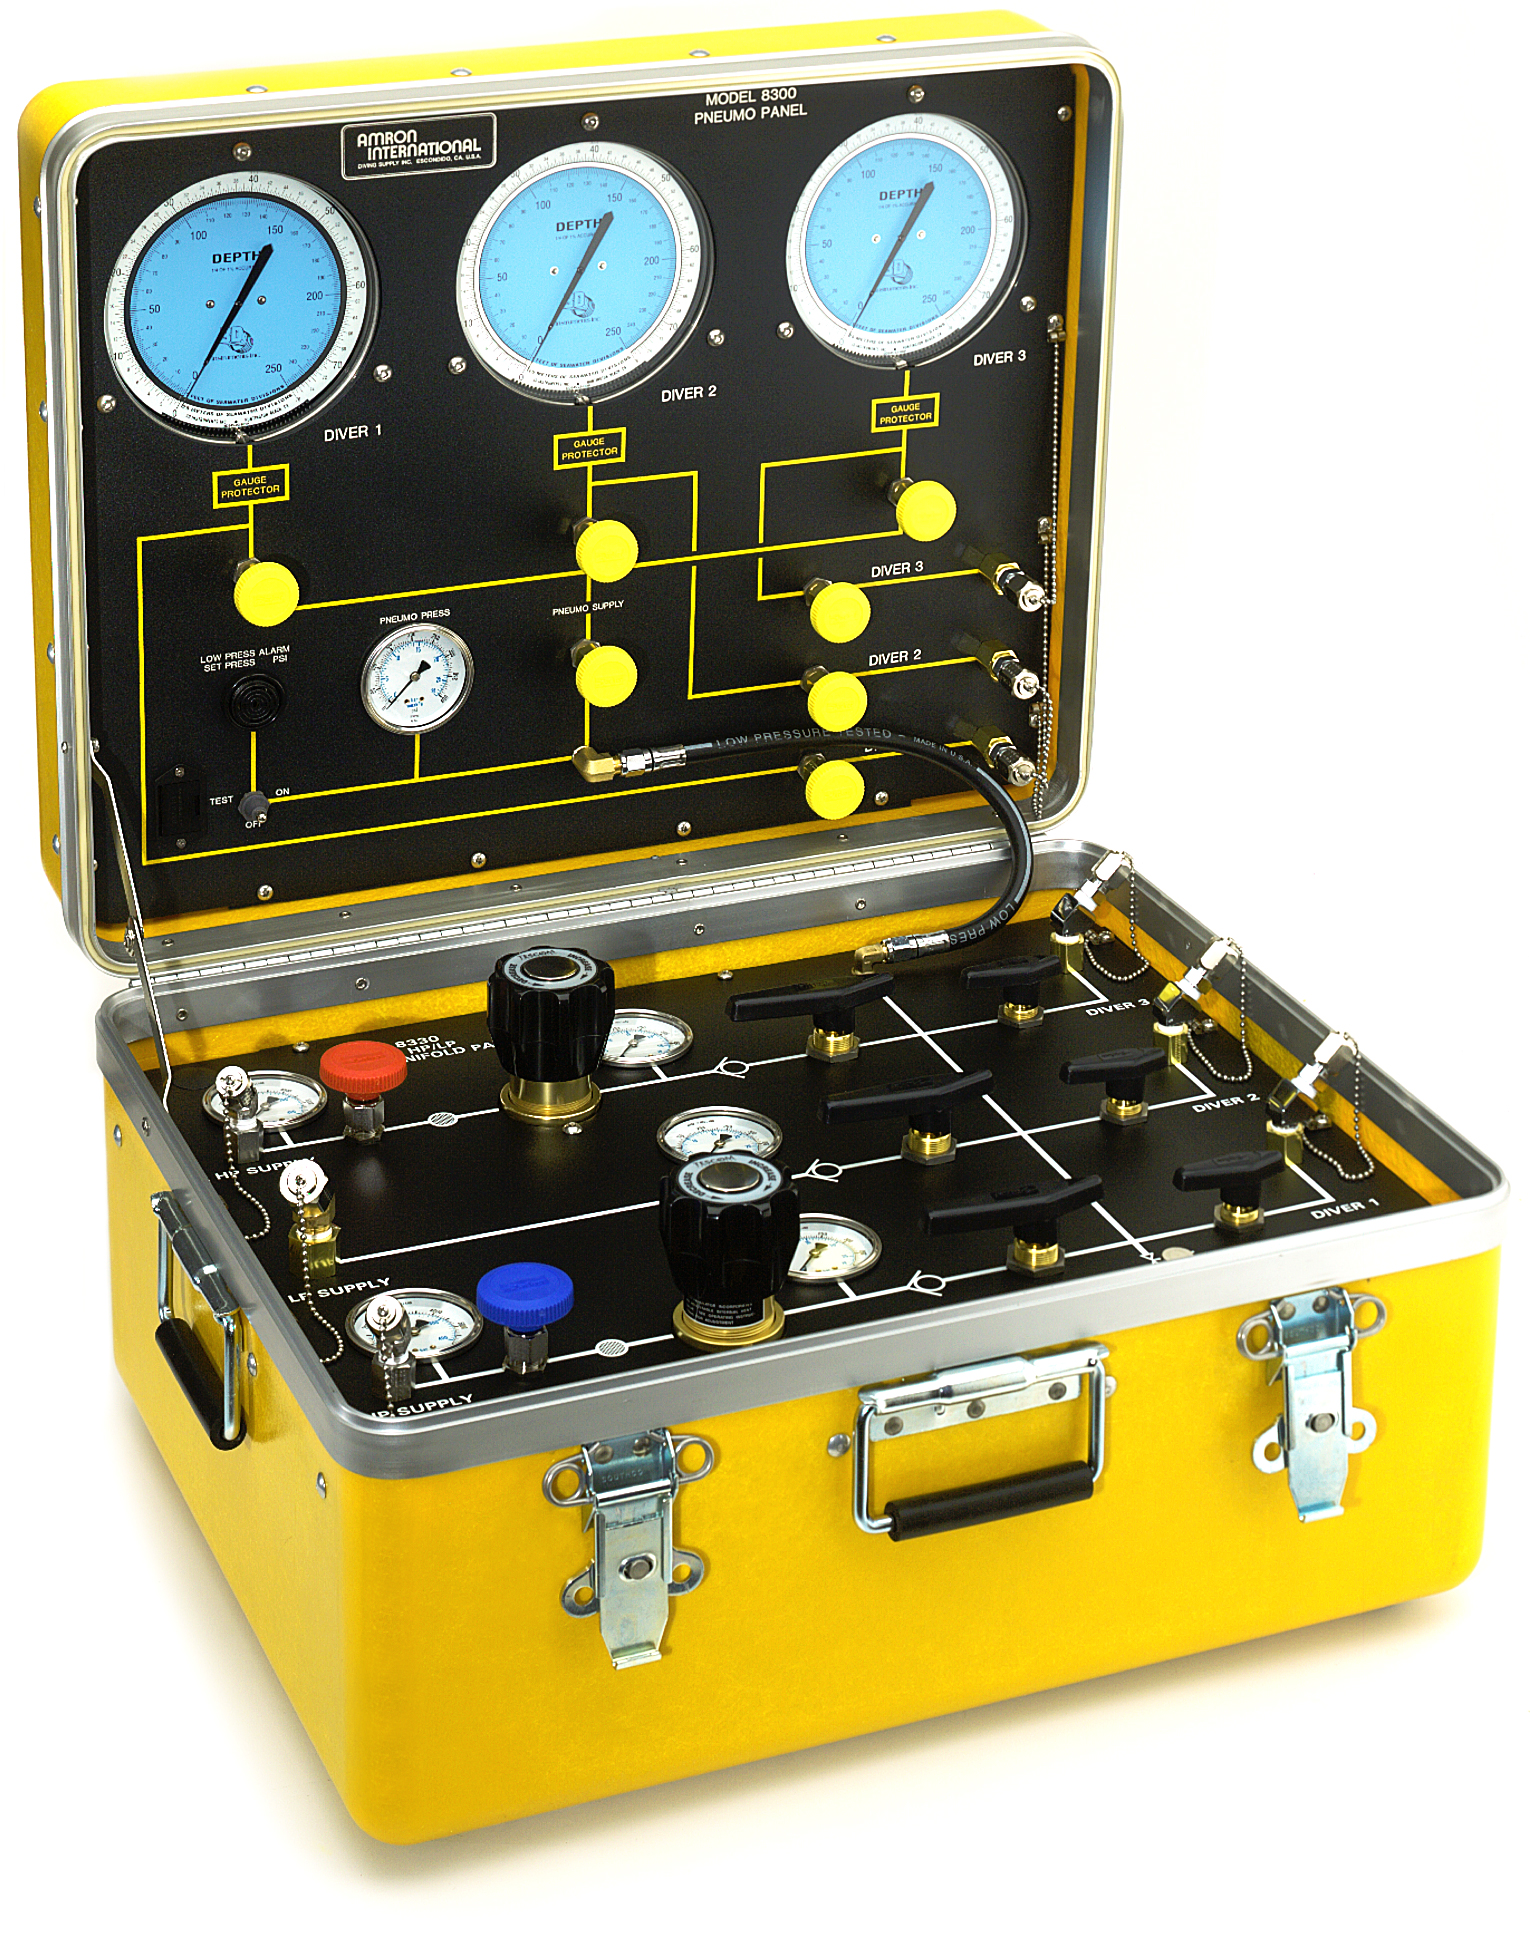 3-Diver Air Control and Depth Monitoring System